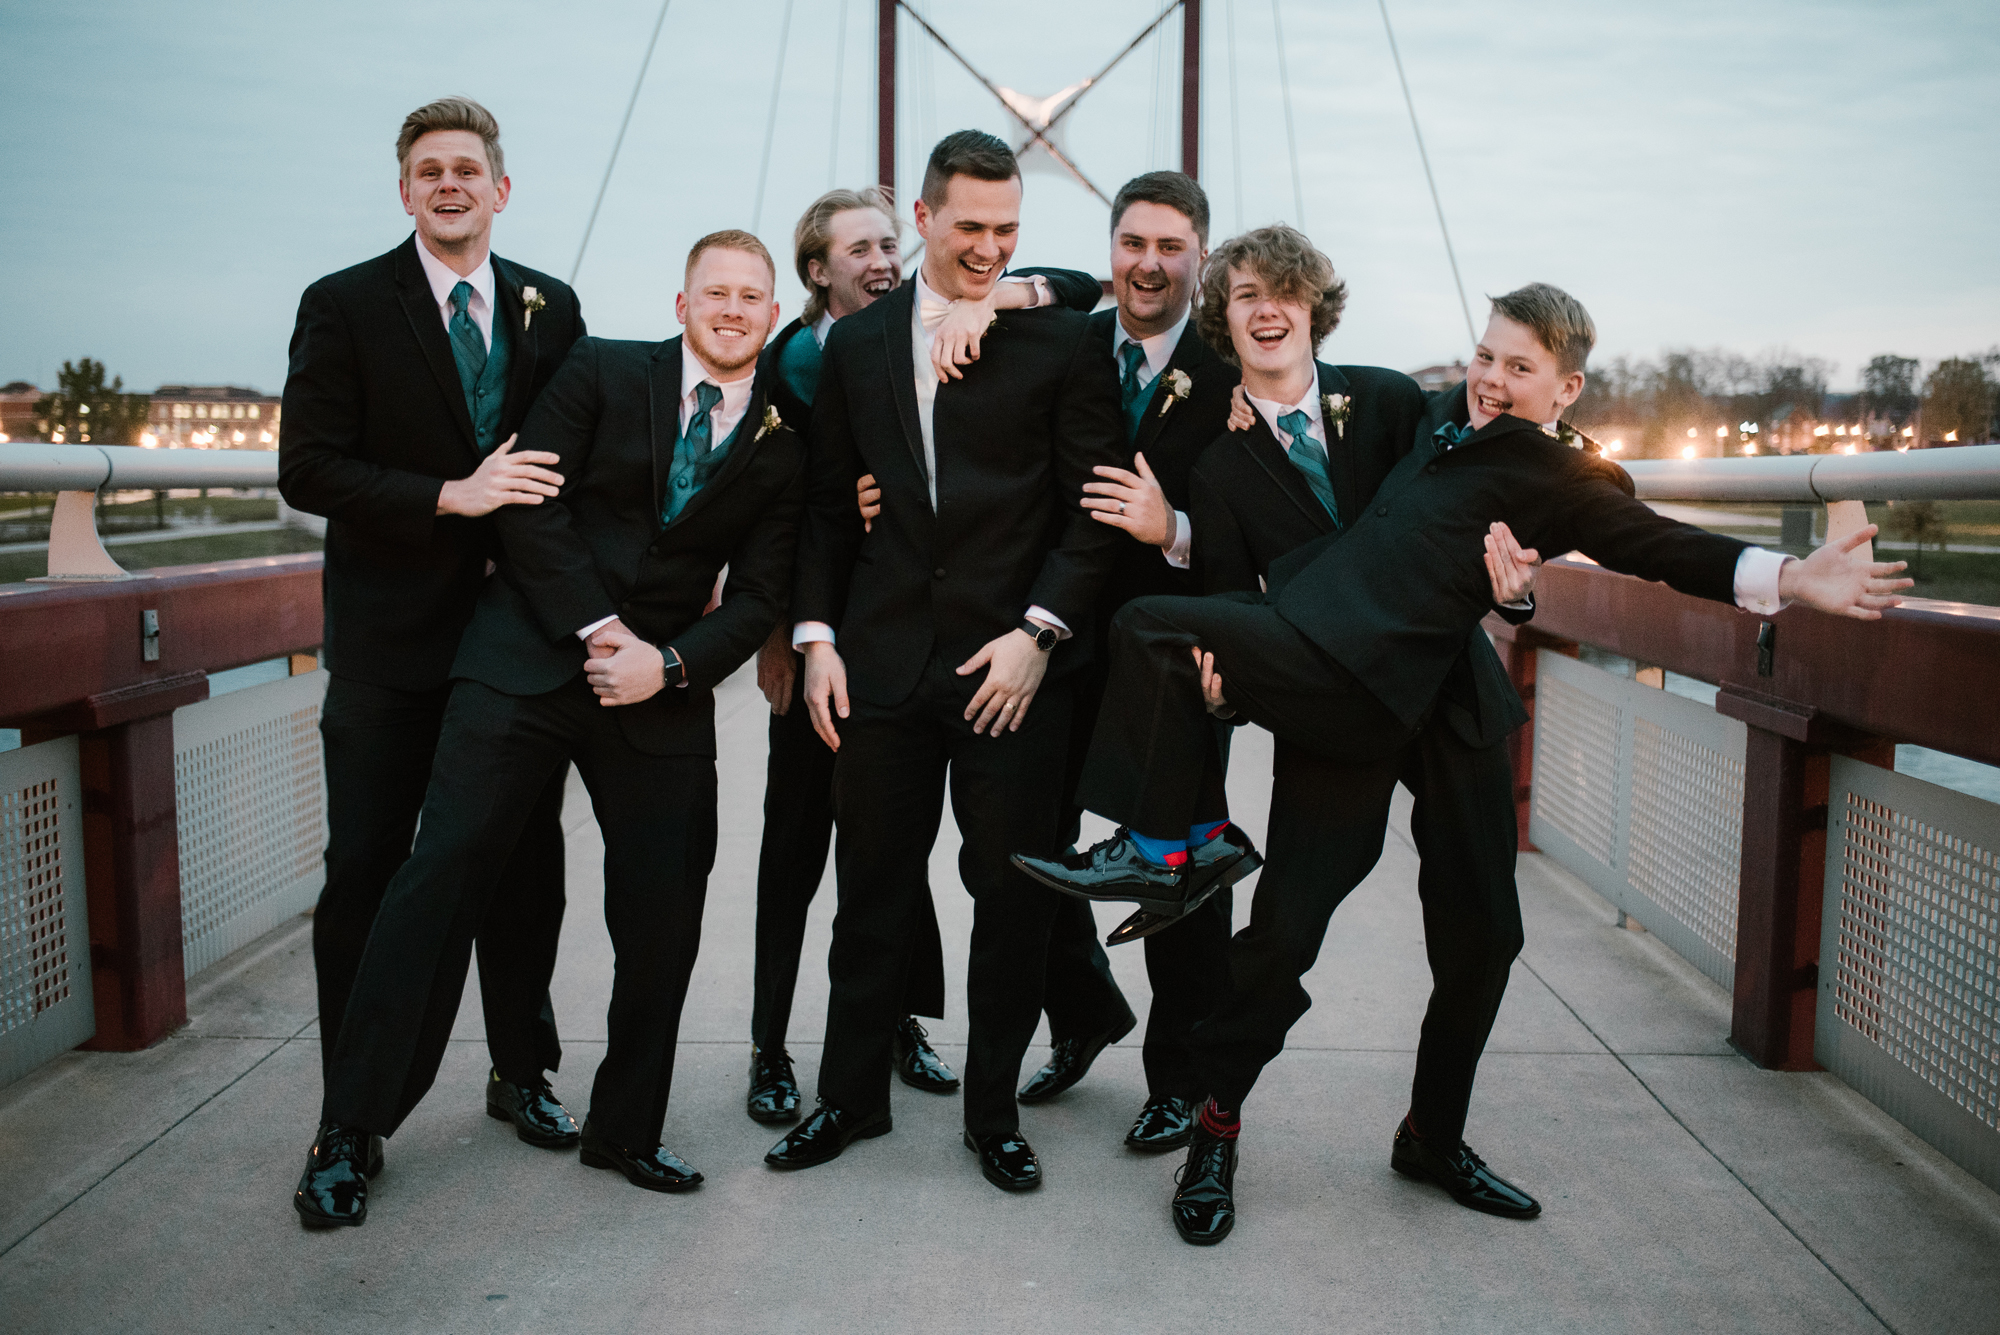 fun groomsmen picture